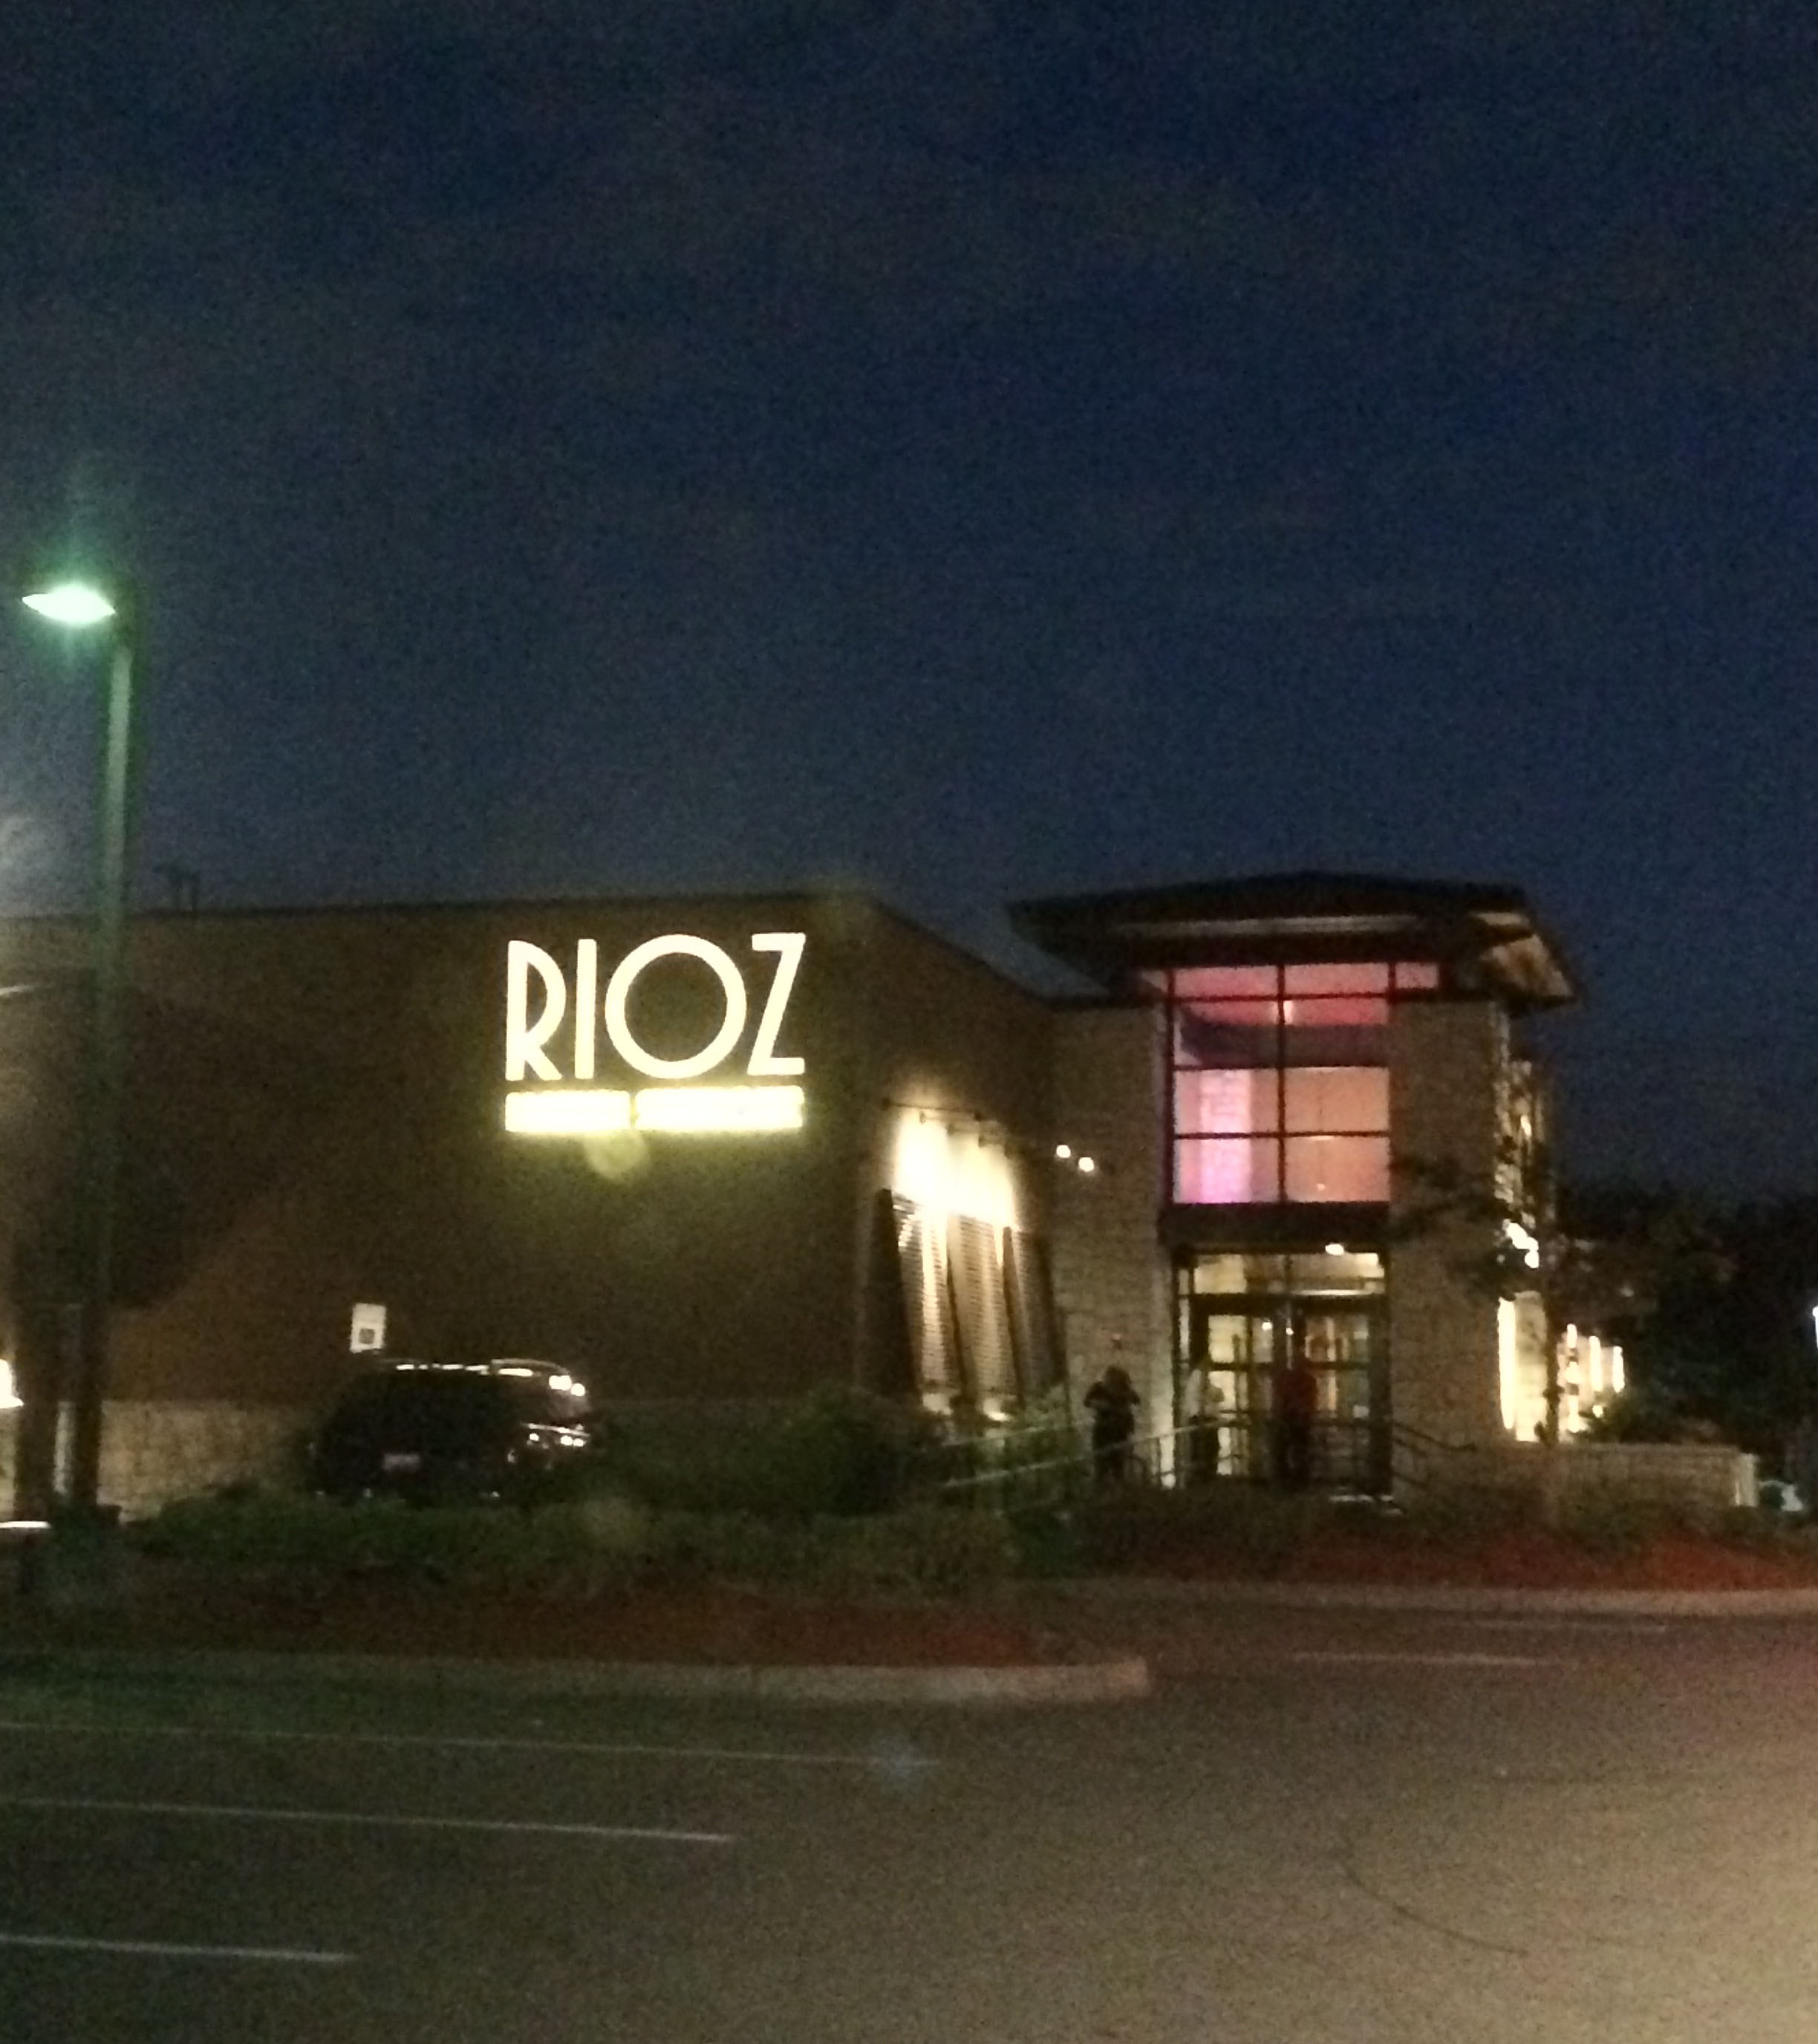 This is what Rioz looks like from the outside.